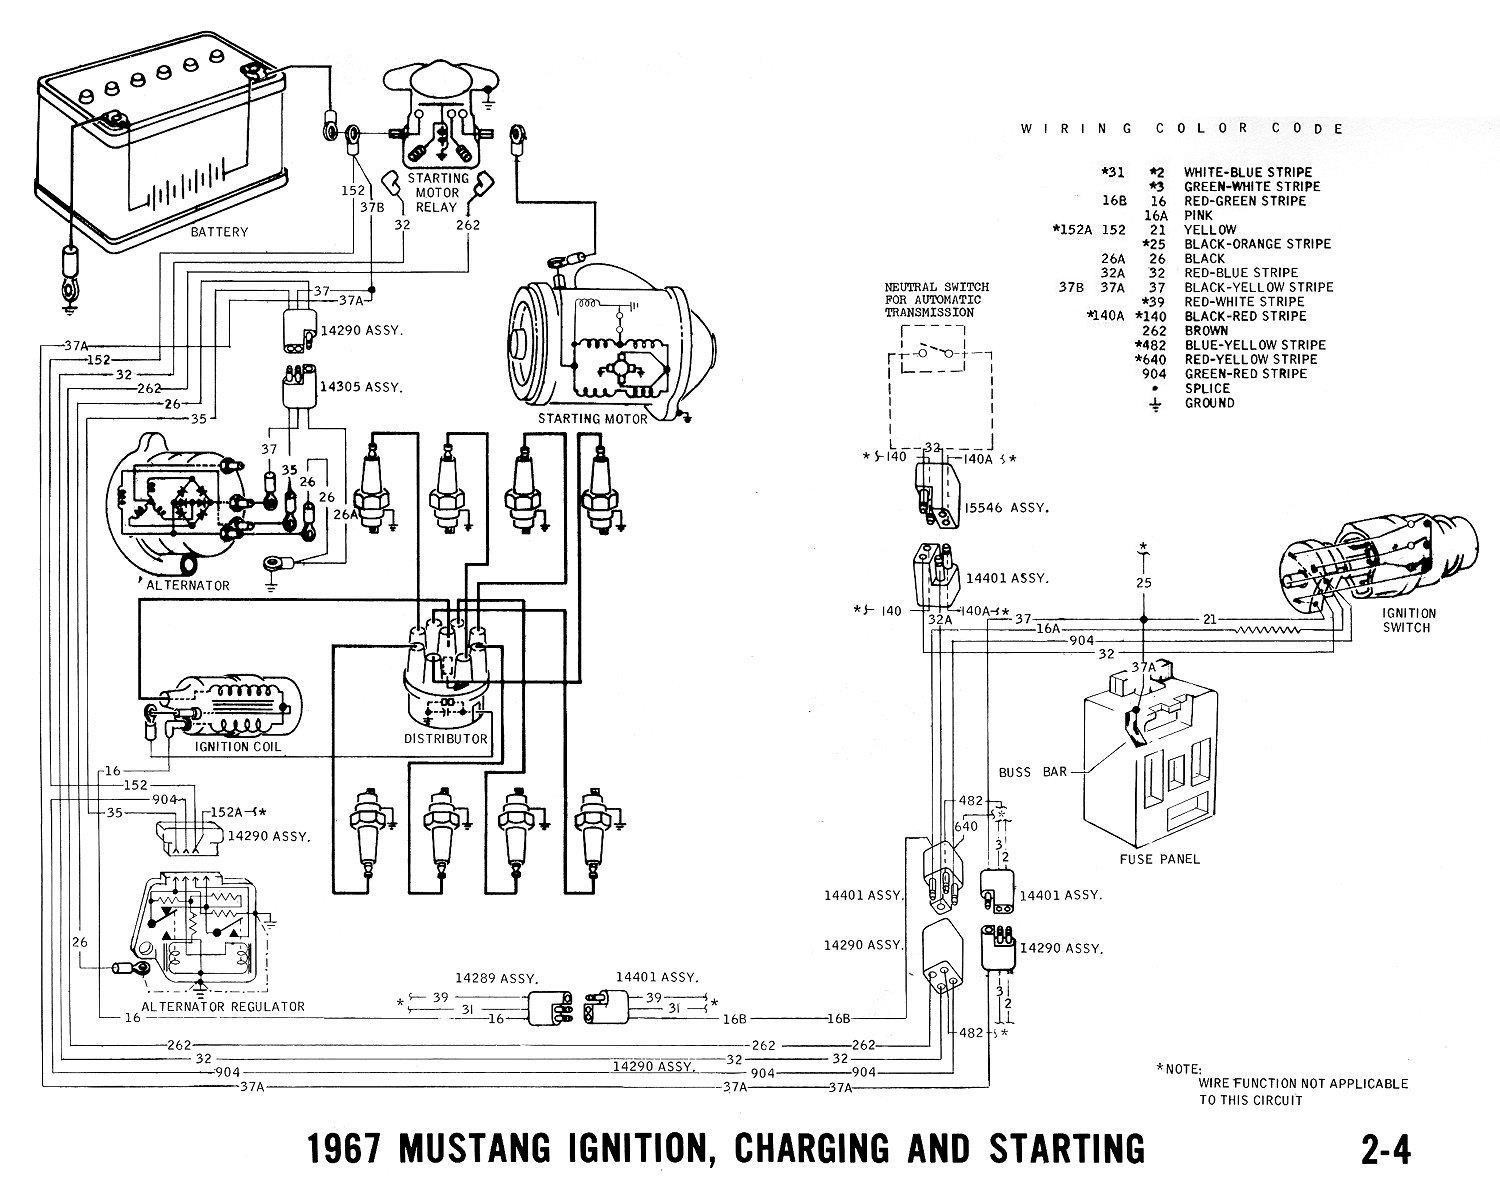 1990 ford mustang wiring diagram free download wiring diagram rh agarwalexports co 2012 ford mustang stereo wiring diagram Shaker 500 Wiring Diagram